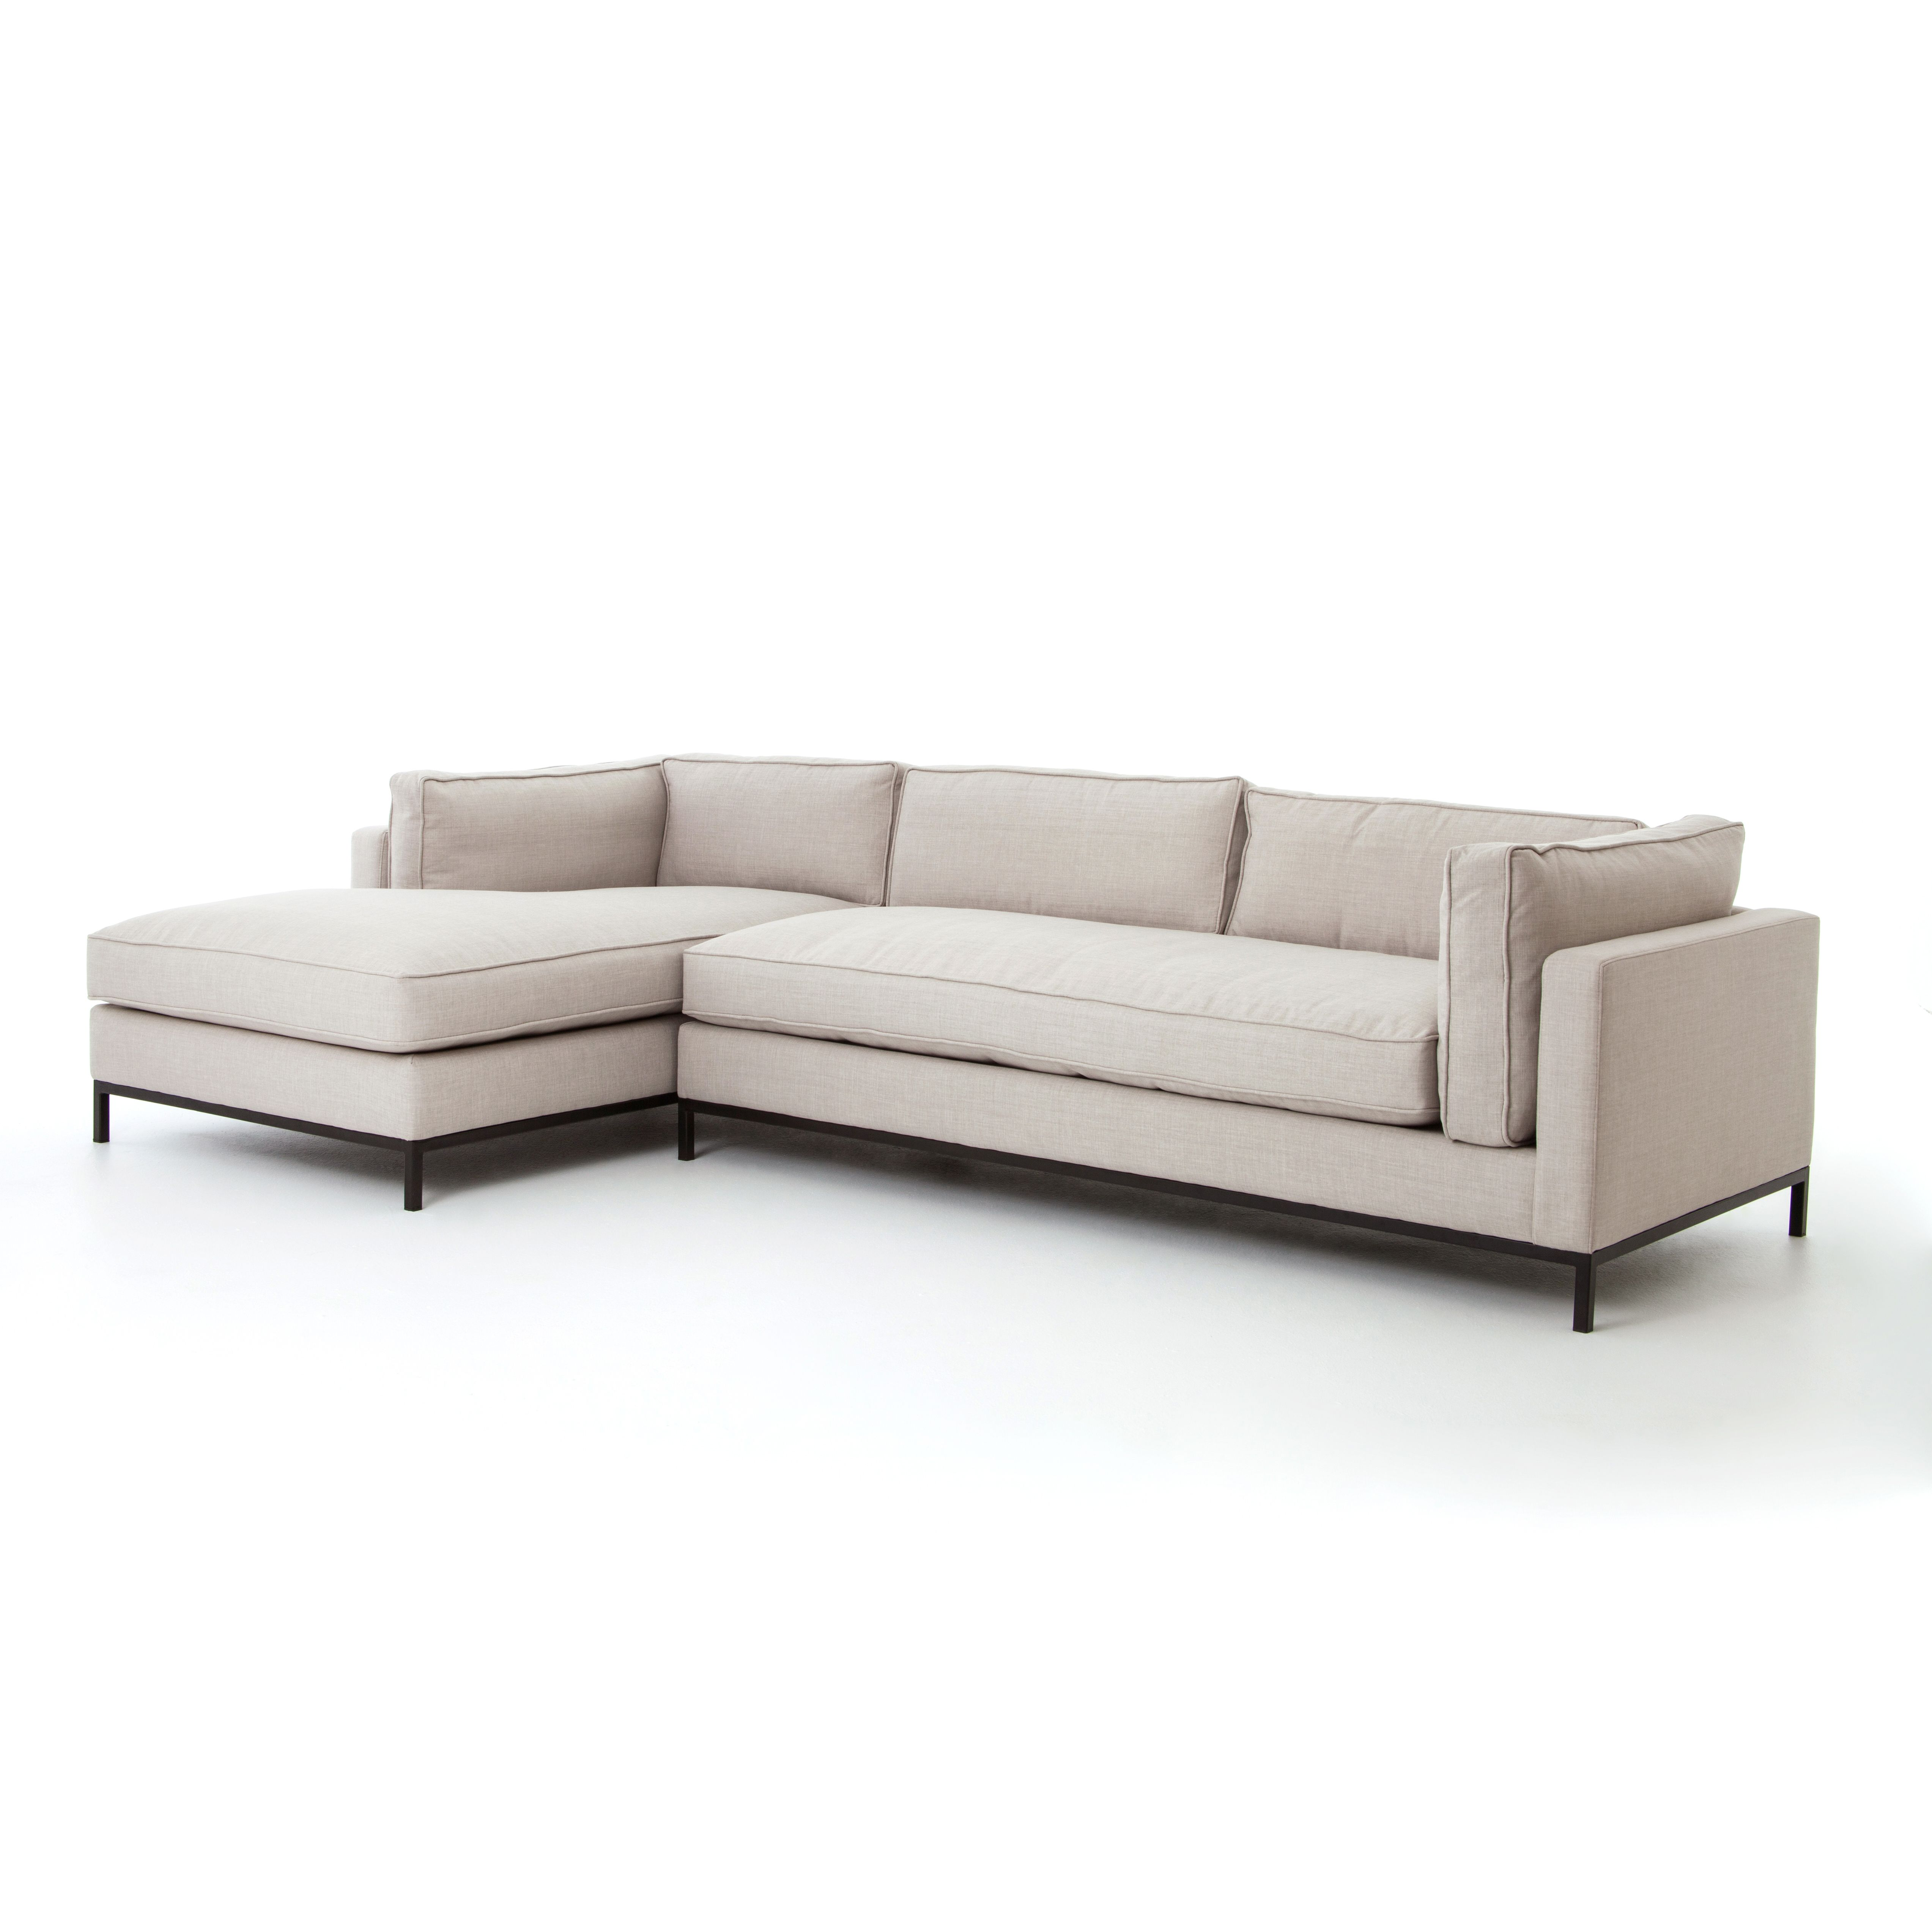 2 PC SECTIONAL LEFT ARM CHAISE Flexible Style, Luxurious Comfort, And  Family Friendly Upholstery. Clean, Simple Lines And A Black Iron Base Keep  Everything ... Amazing Ideas